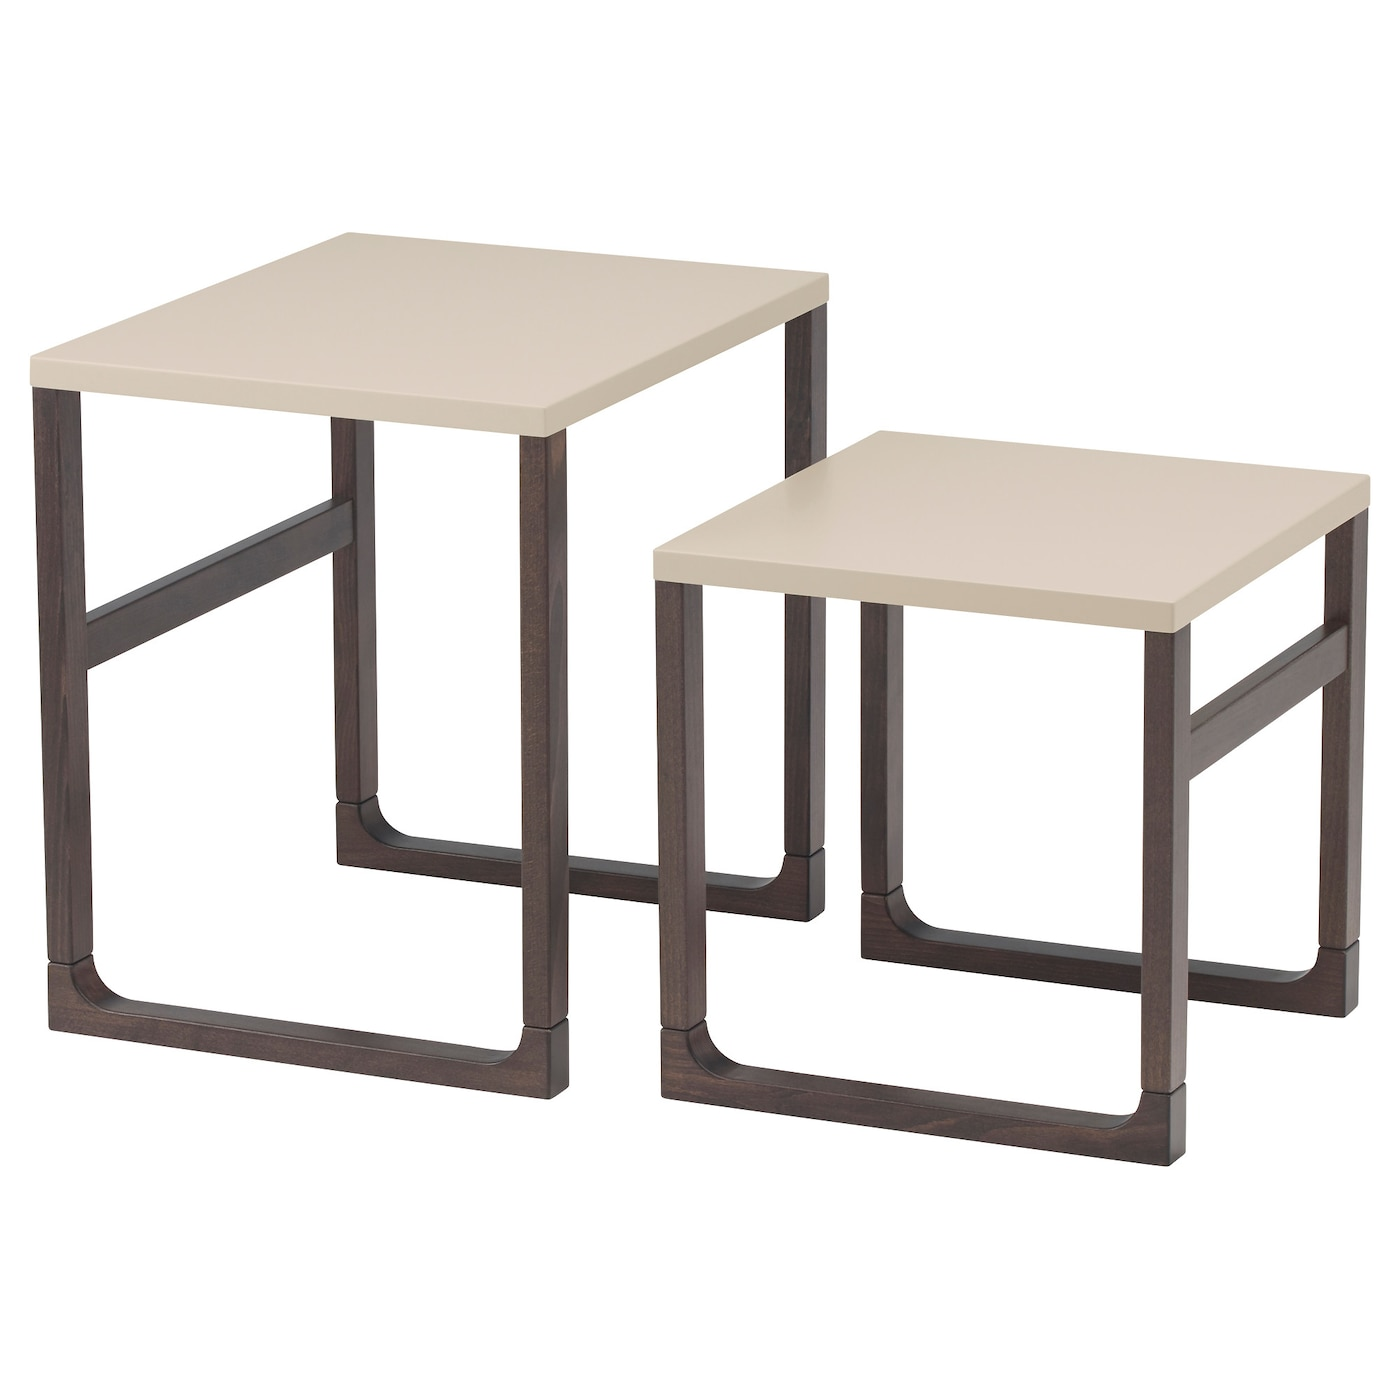 Rissna nest of tables set of 2 beige ikea for Where can i buy vintage furniture